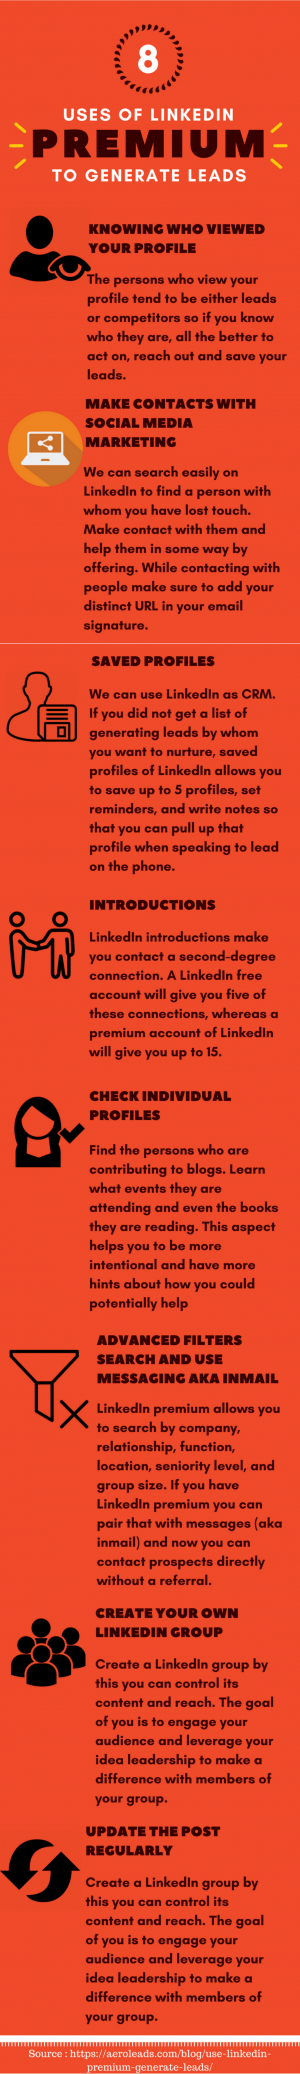 How To Use LinkedIn Premium To Generate Leads